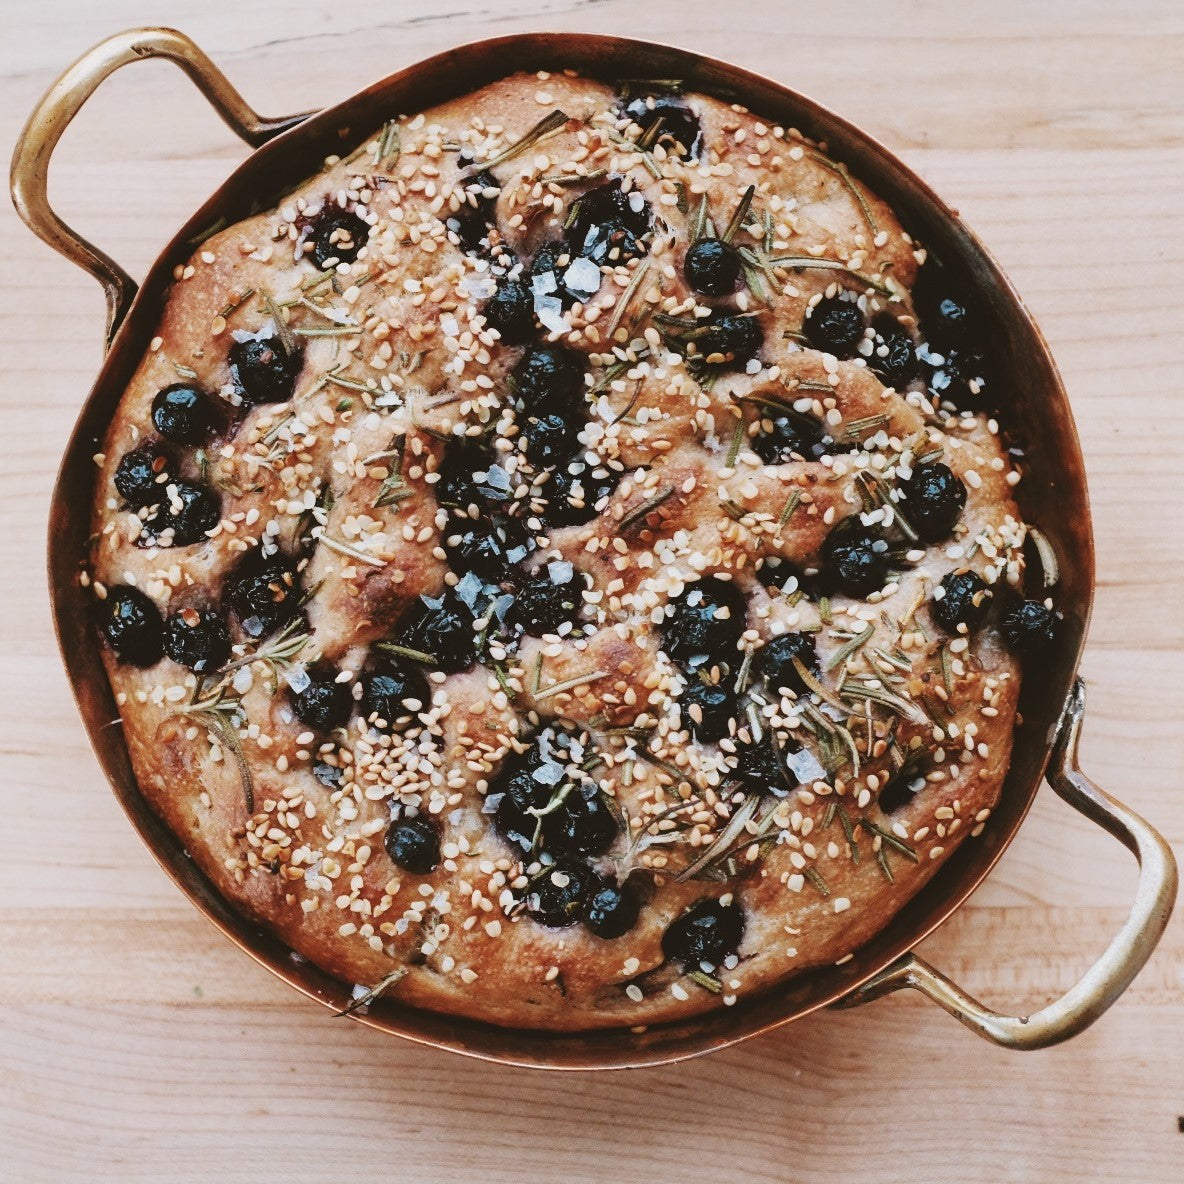 Naturally Leavened Pickled Blueberry & Rosemary Focaccia